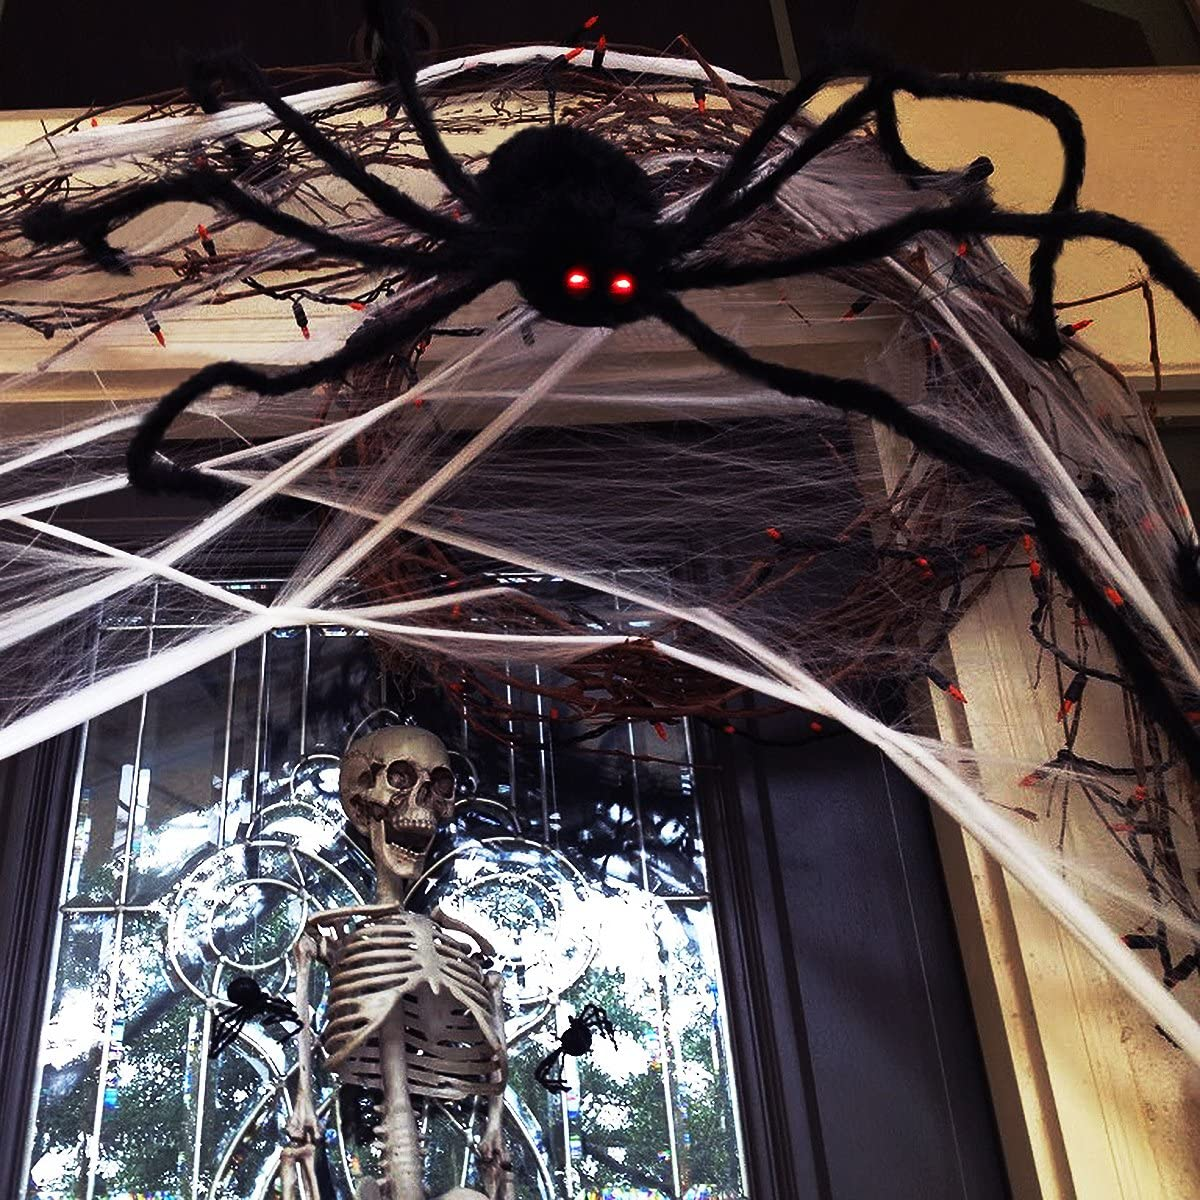 Halloween Spider Decorations with LED Eyes Scary Sound Adjustable for Halloween Bedroom Decor 125CM